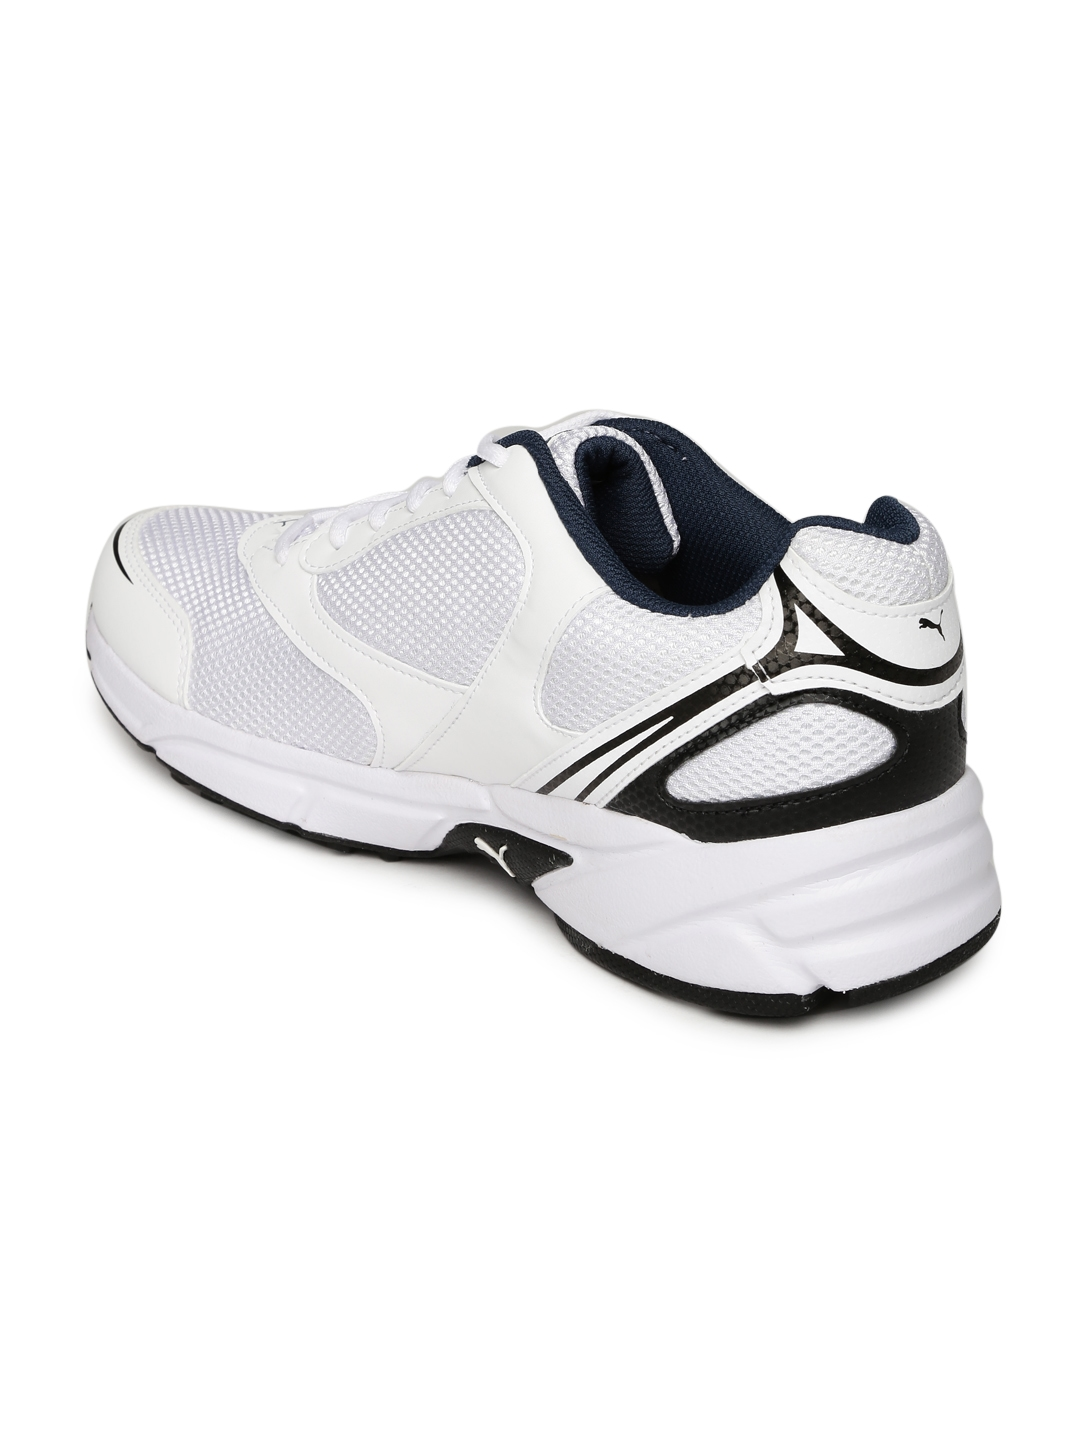 01ebaf4214a0 Buy Puma Men White Aron Ind. Running Shoes - Sports Shoes for Men ...